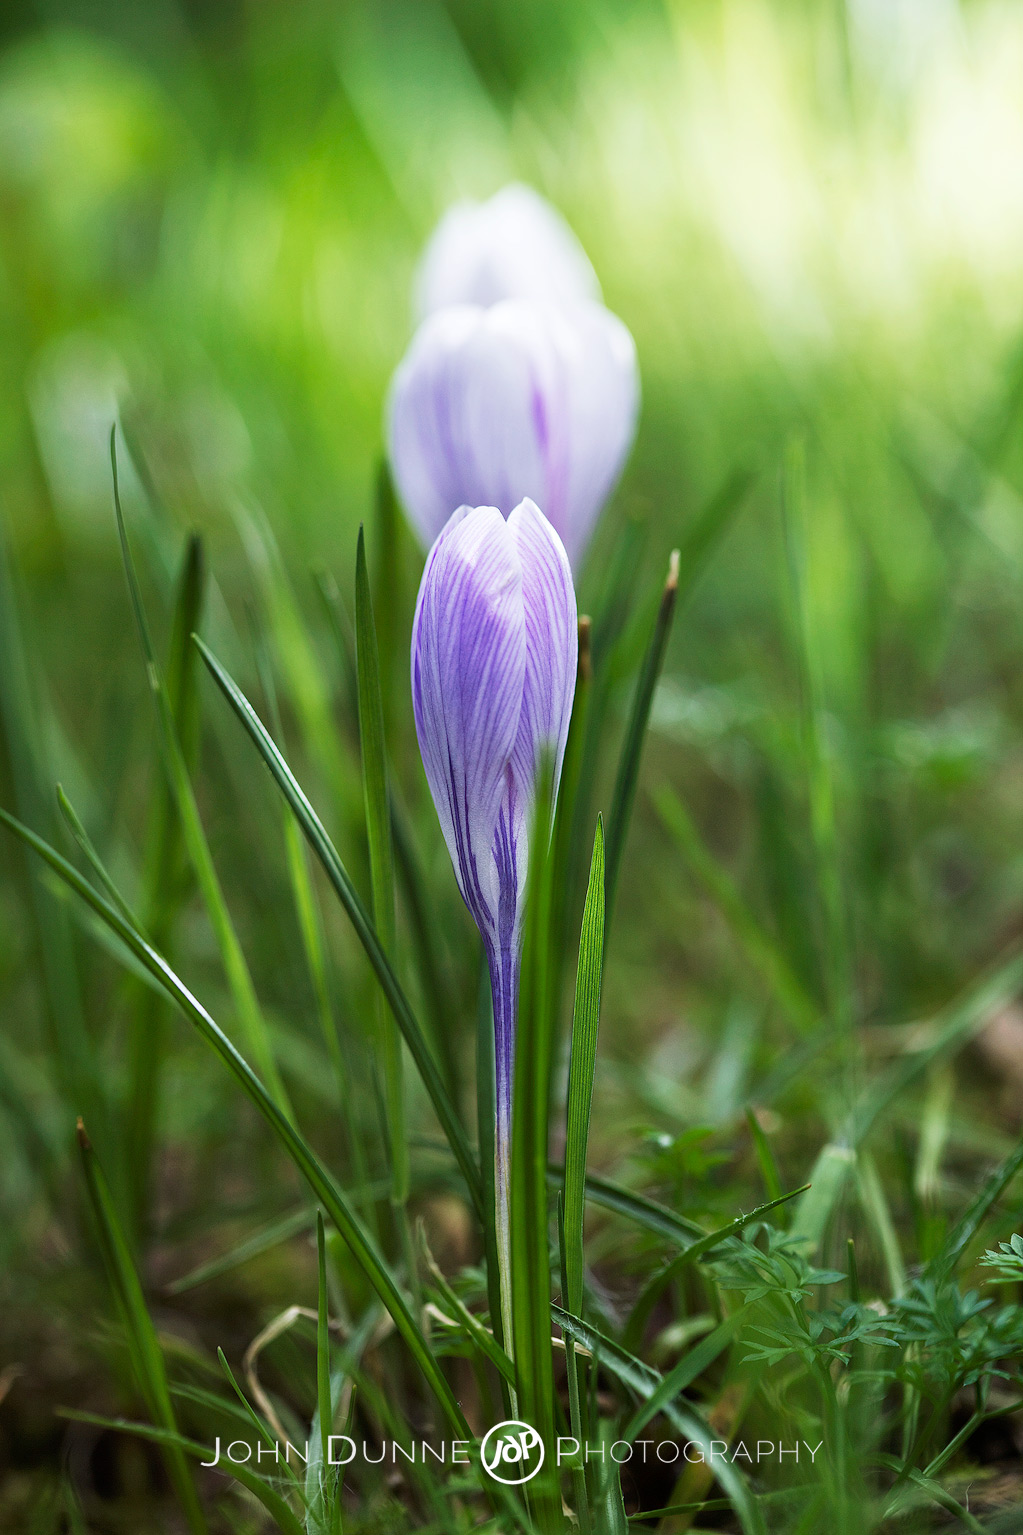 A Line of Crocuses by John Dunne.